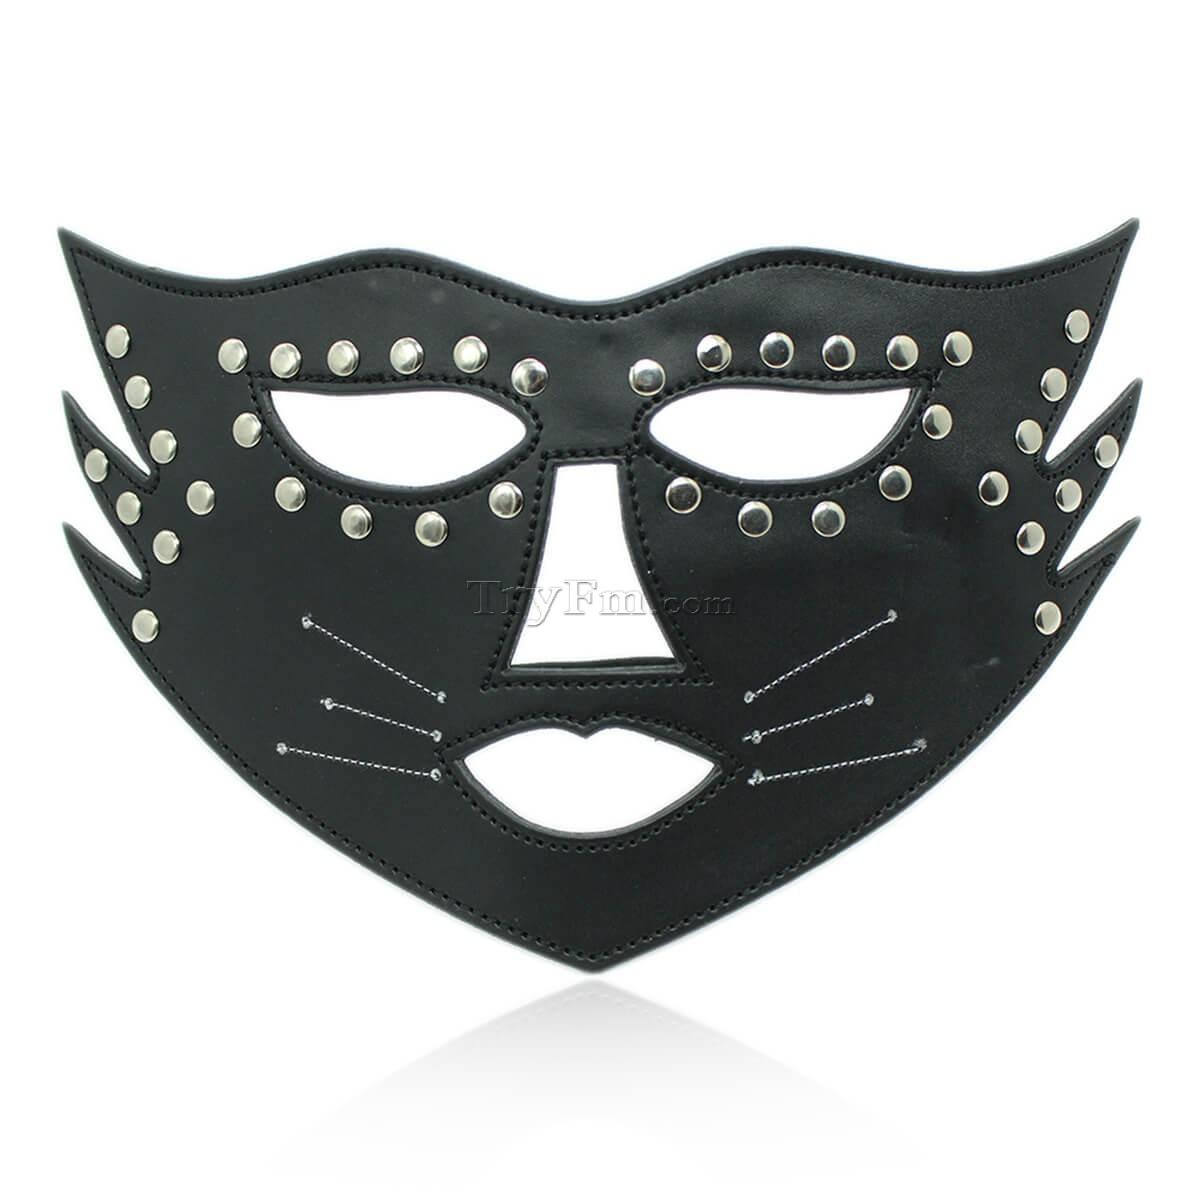 12-cat-face-mask1.jpg